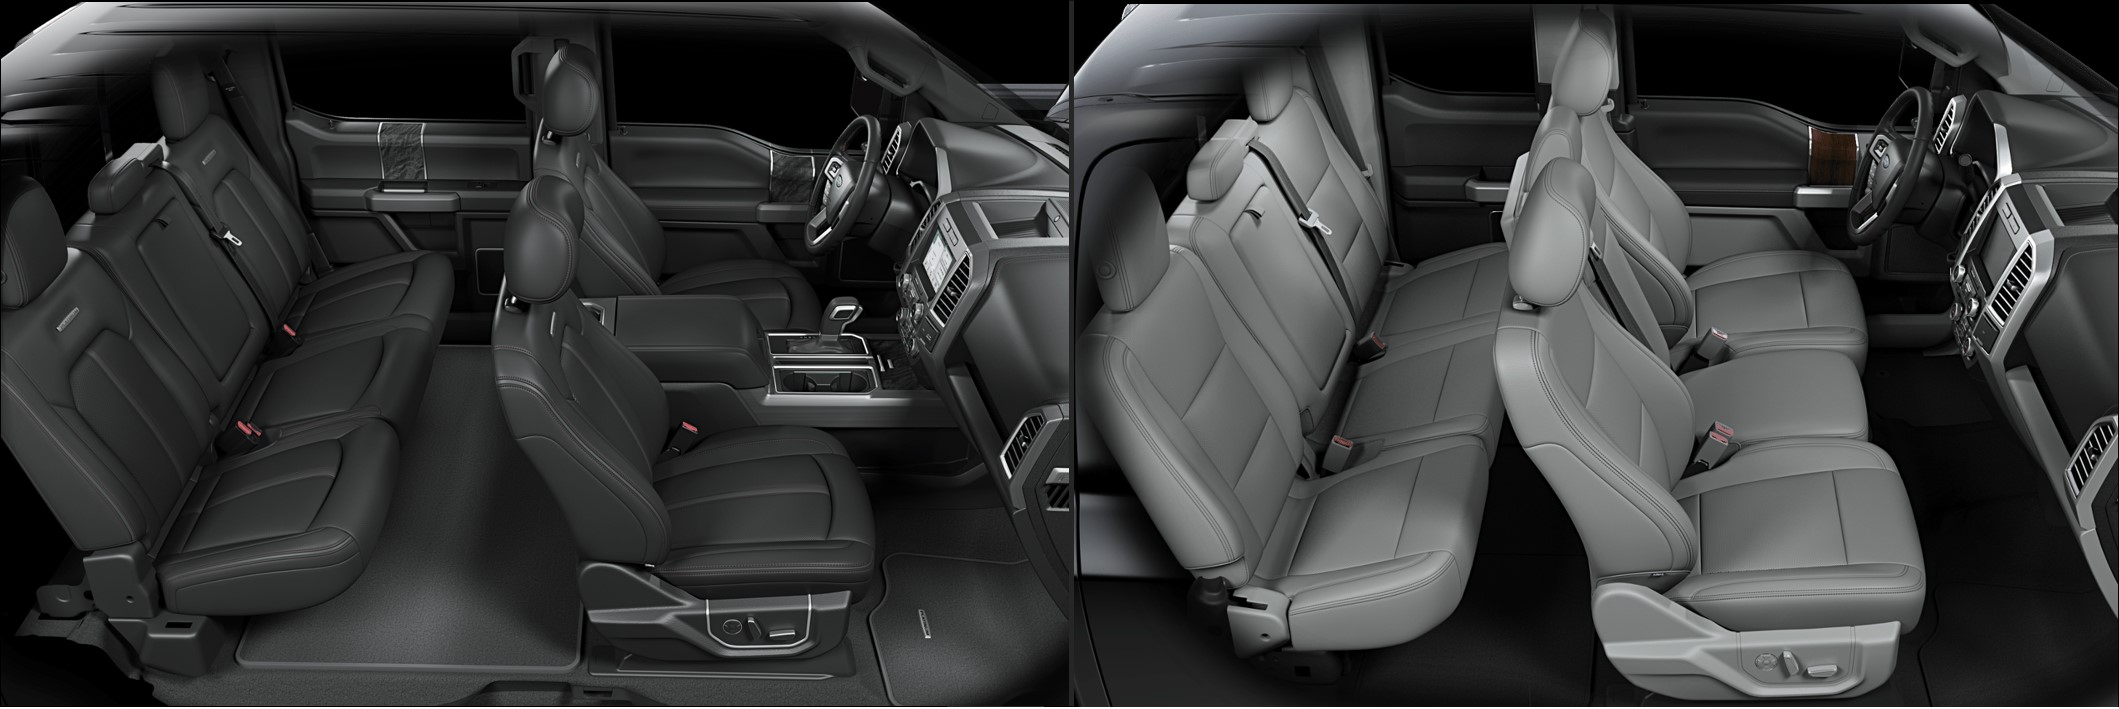 the interior seating of a 2018 vs. 2017 Ford F-150